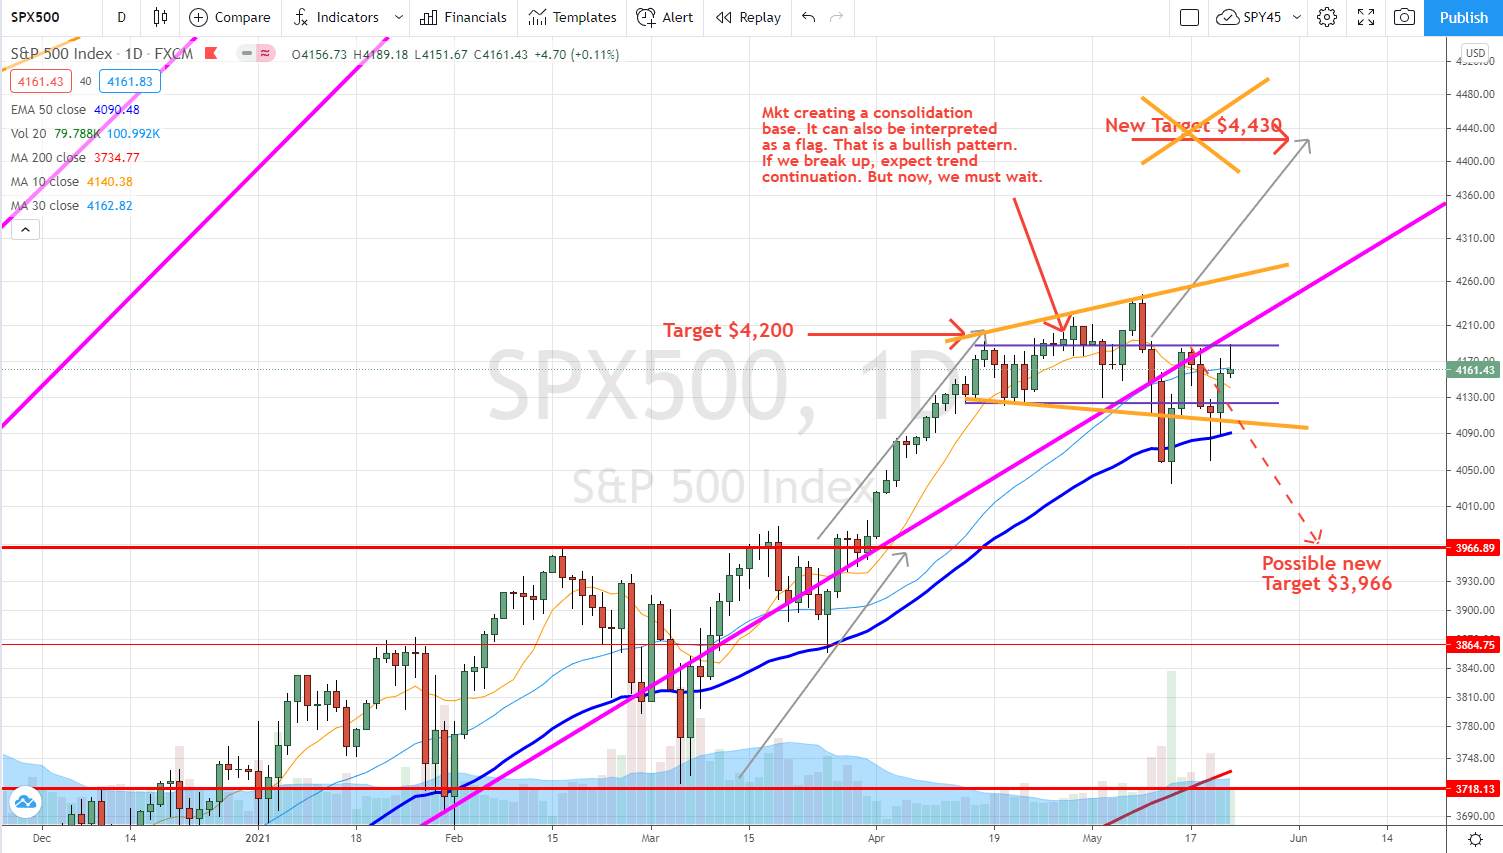 SPX May 22 2021 outlook